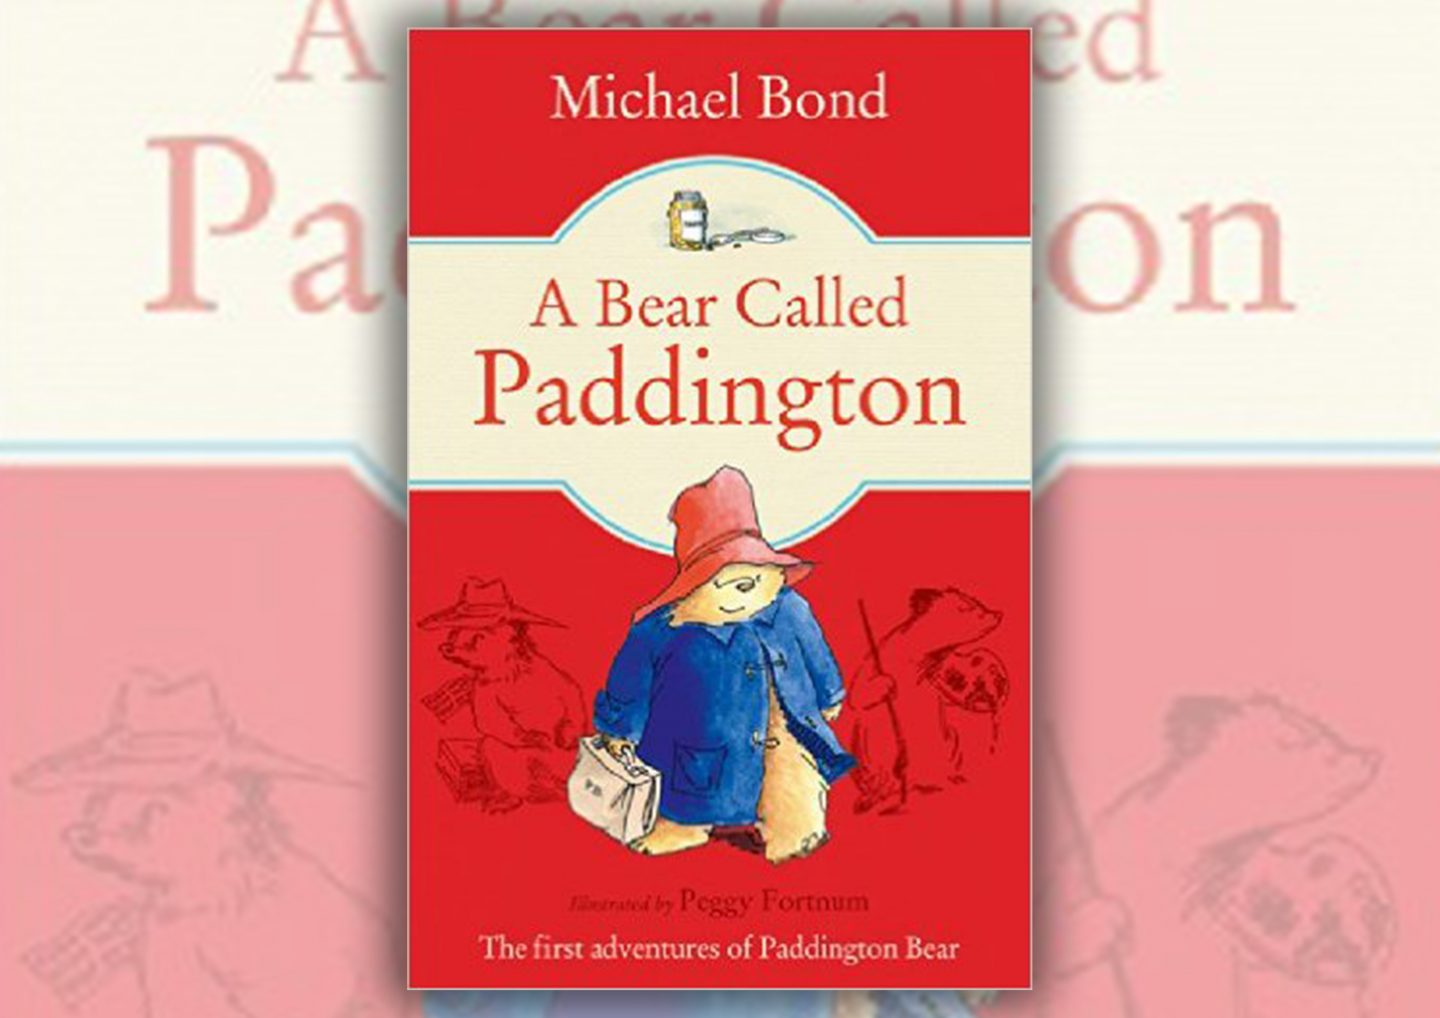 A Bear Called Paddington by Michael Bond Review